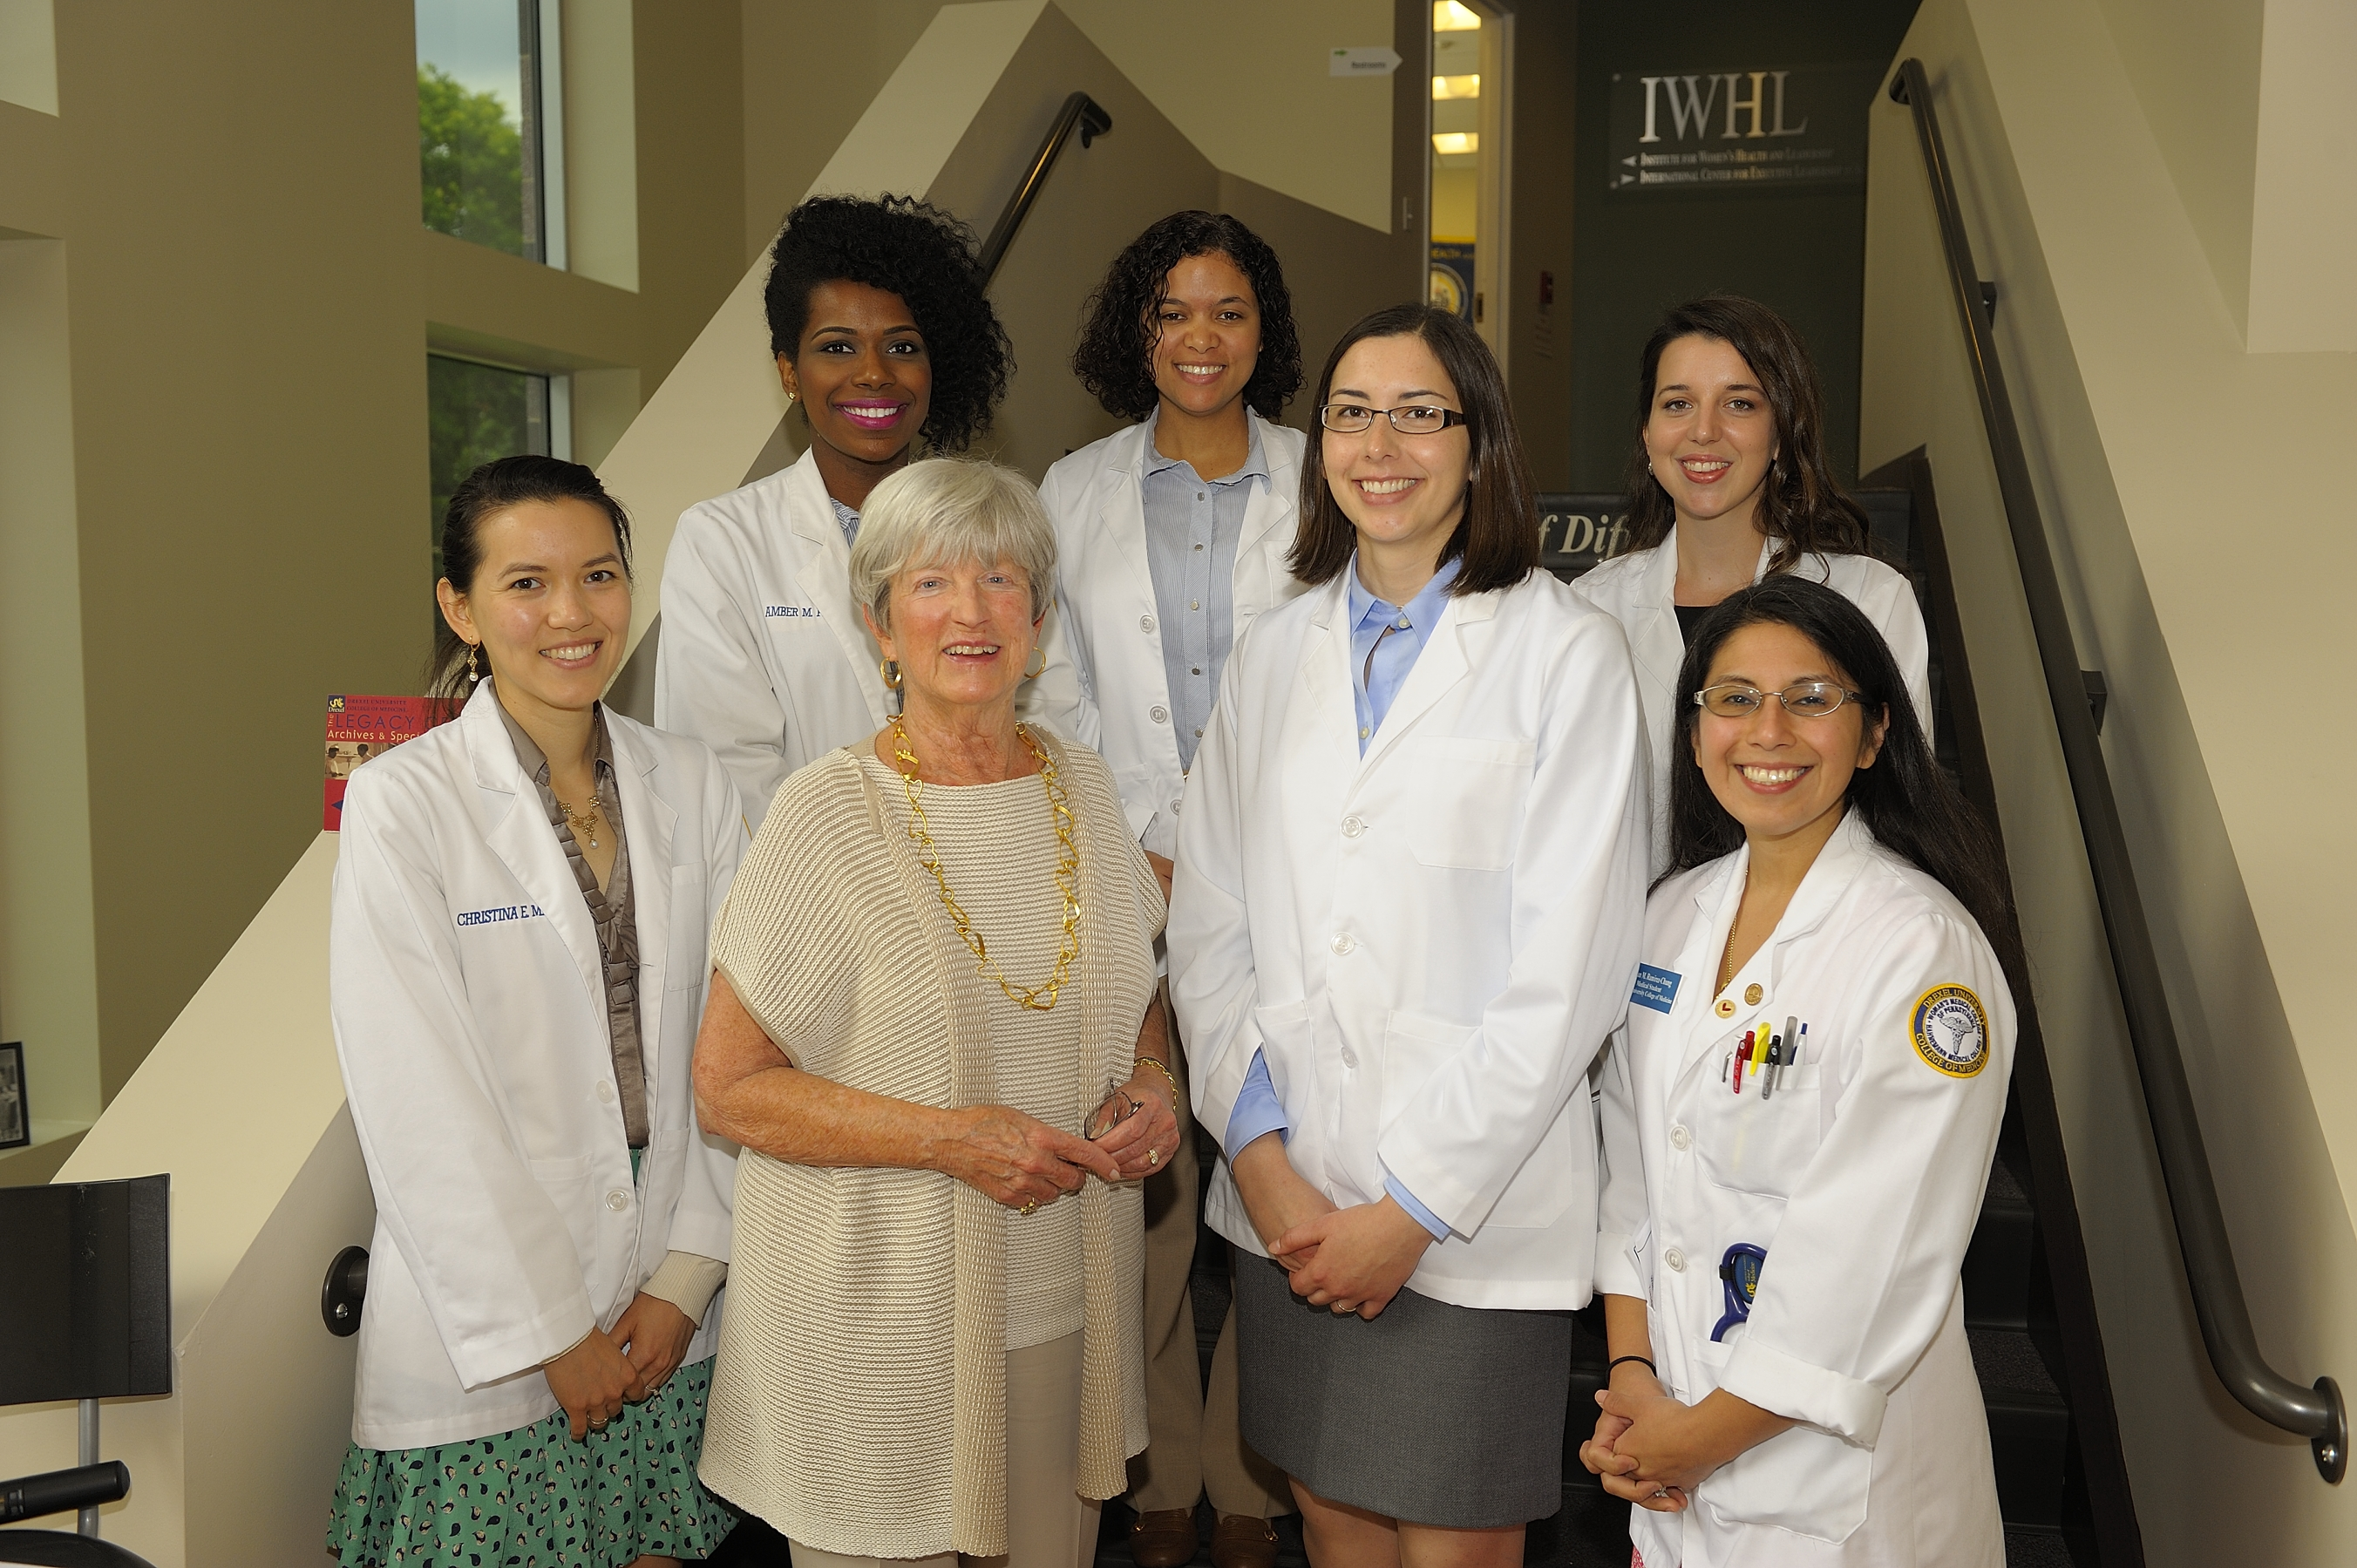 Director of the Institute for Women's Health and Leadership® Lynn Yeakel with Previous Woman One Scholars